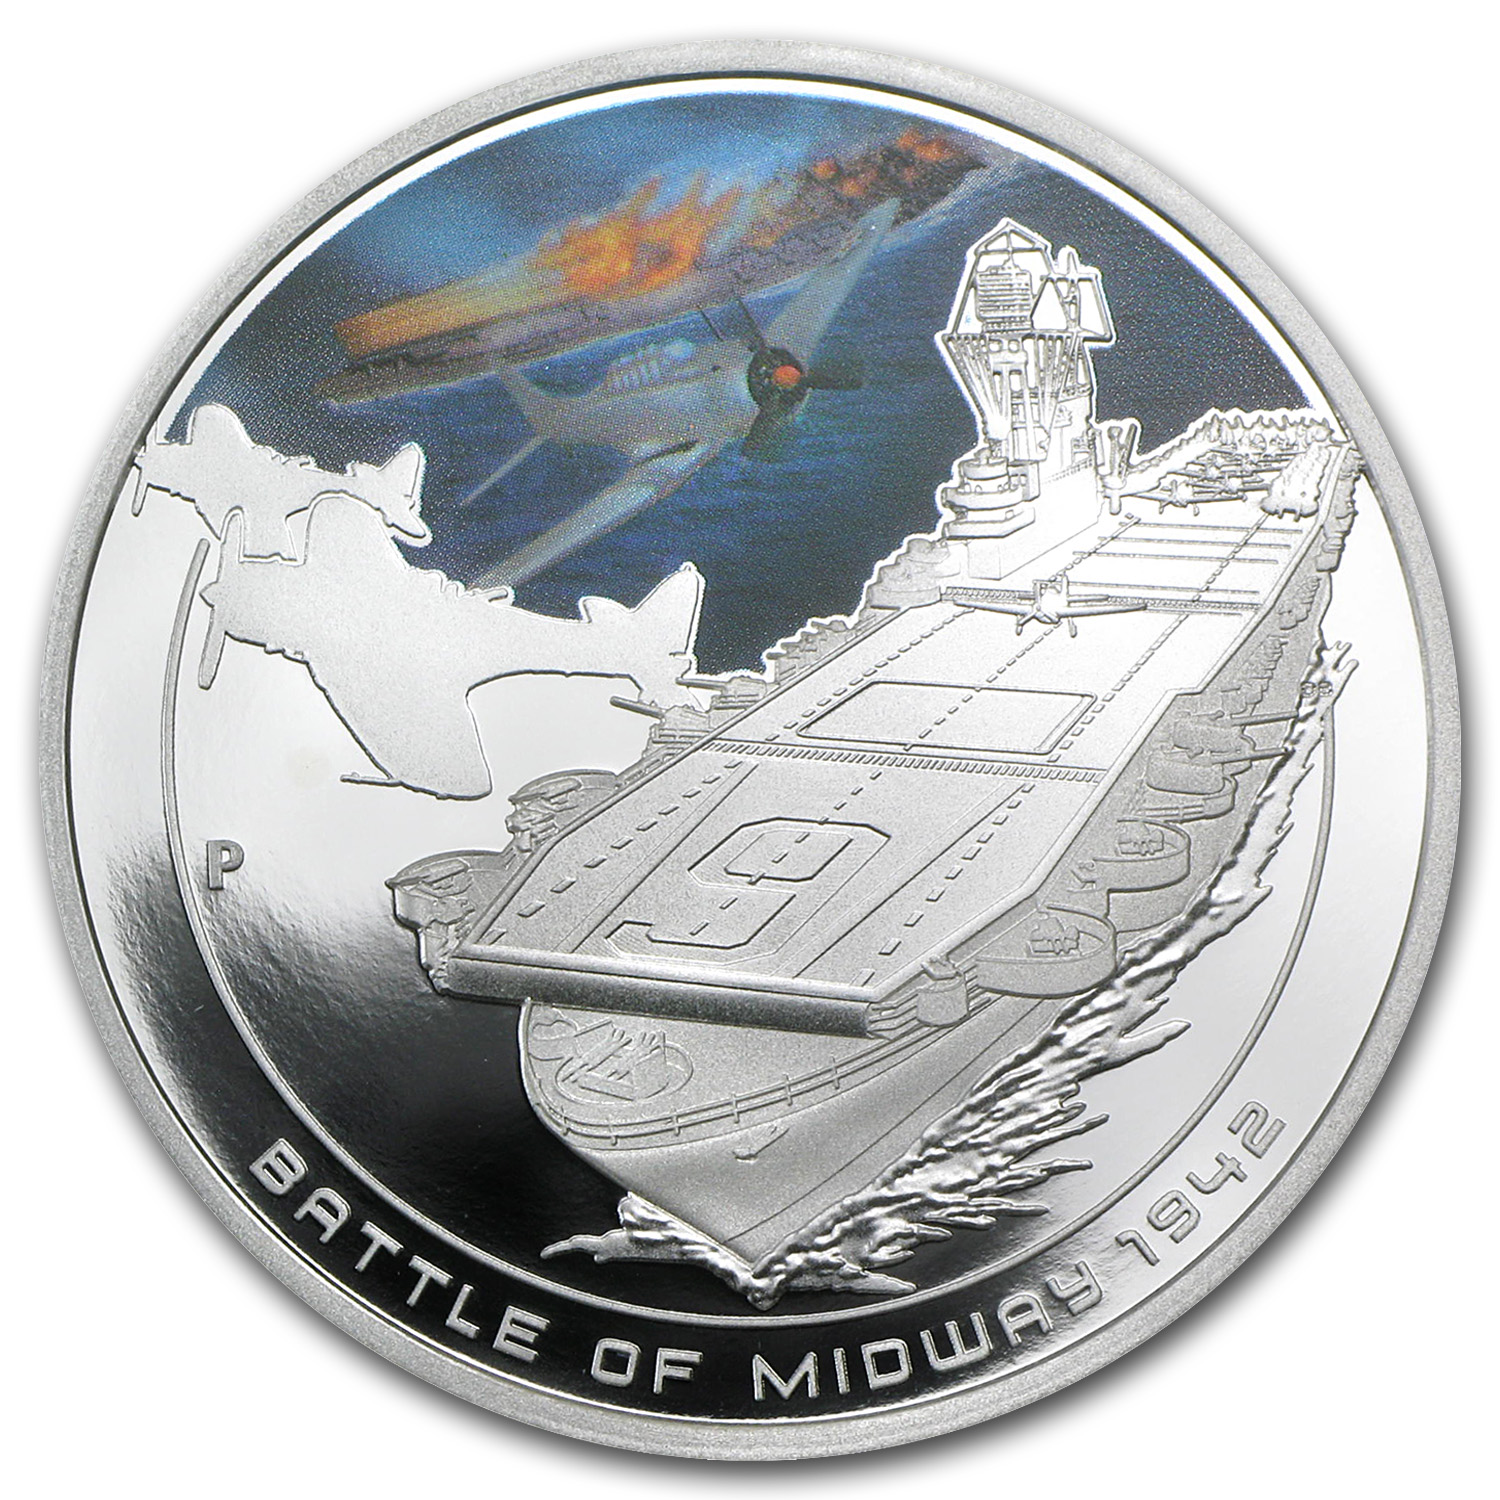 2011 Cook Islands 1 oz Silver Battle of Midway Proof